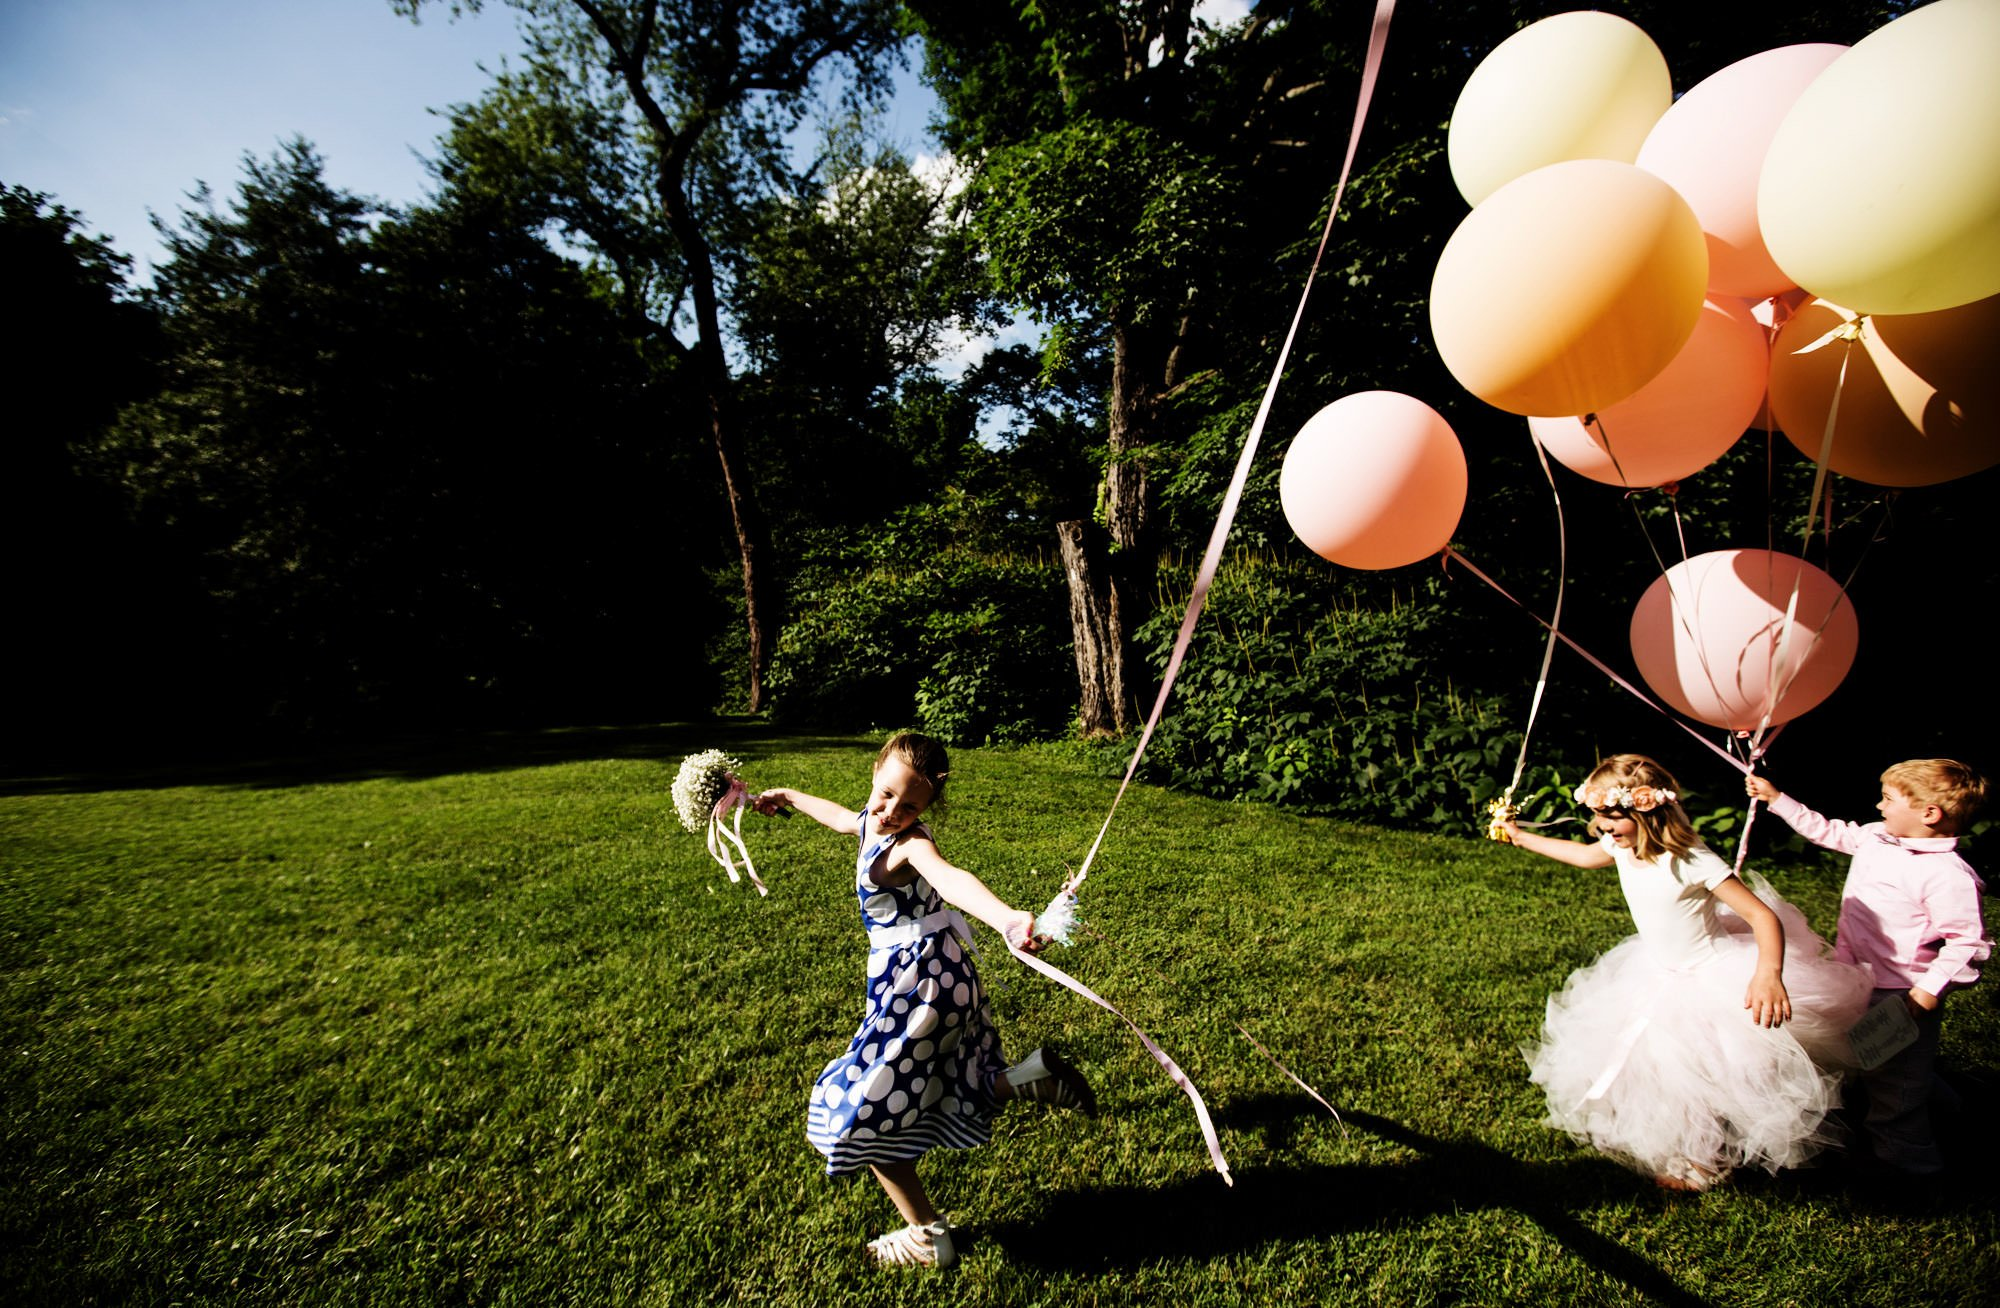 Children play with balloons on the grounds of Hendry House.